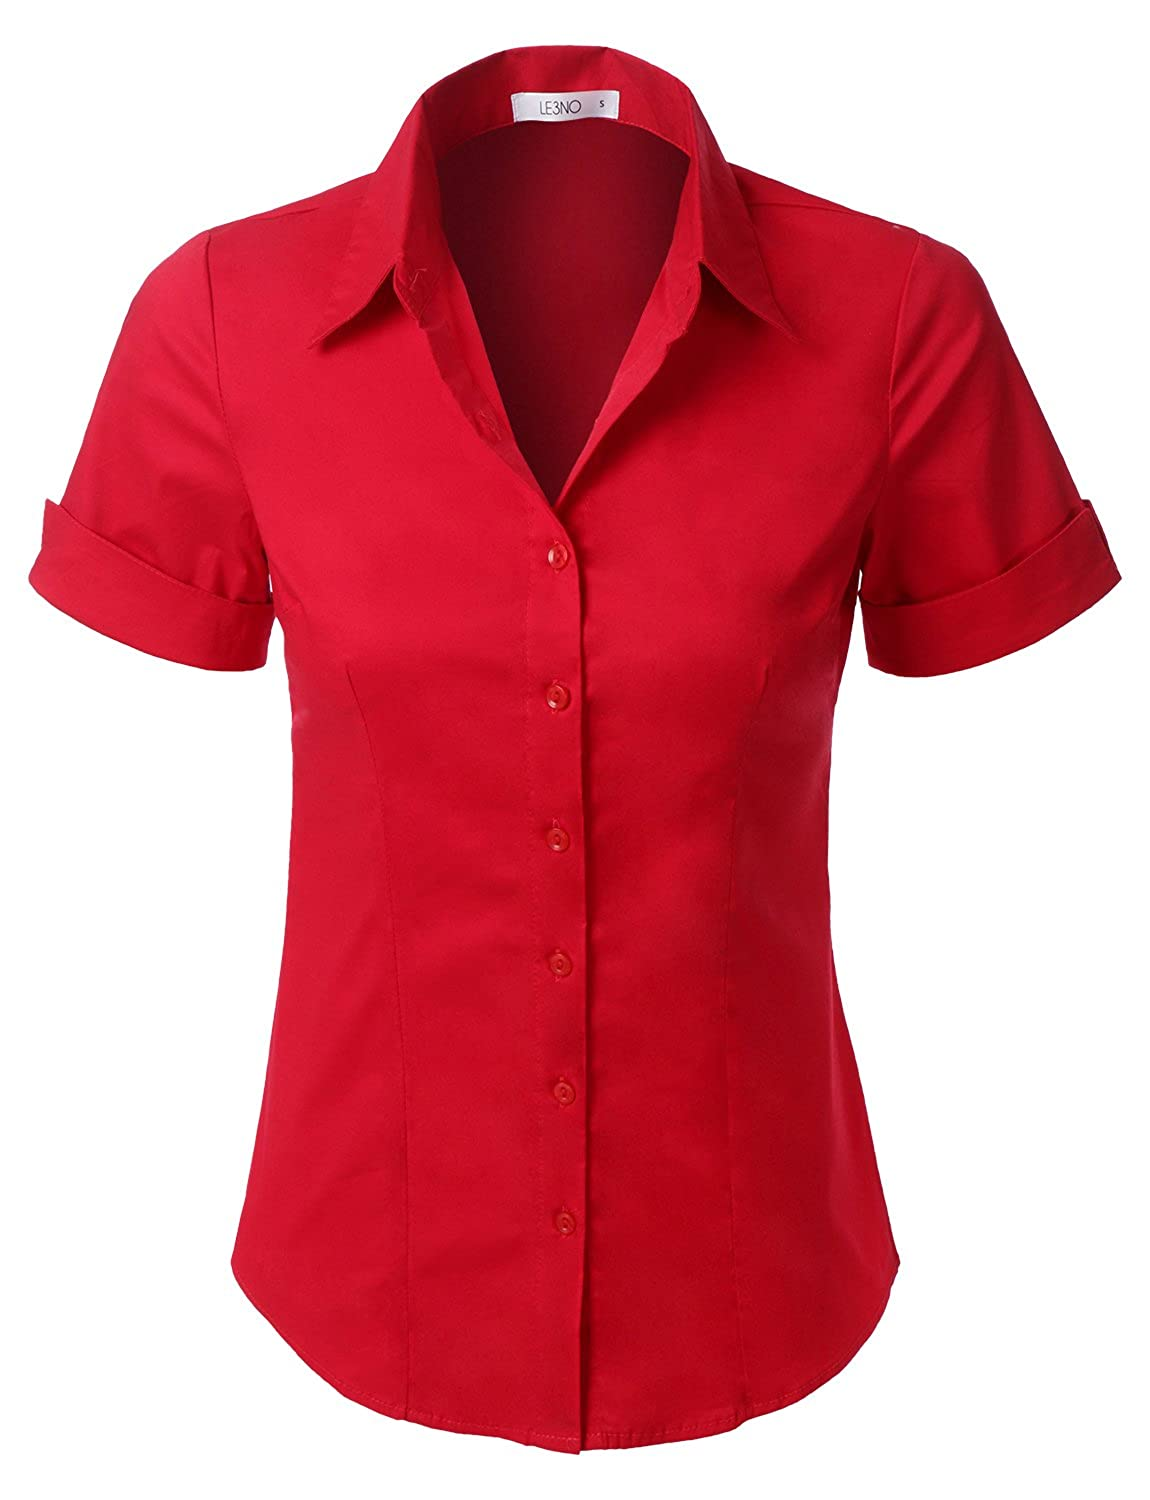 Rosie the Riveter Costume & Outfit Ideas LE3NO Womens Tailored Short Sleeve Button Down Shirt with Stretch $23.45 AT vintagedancer.com